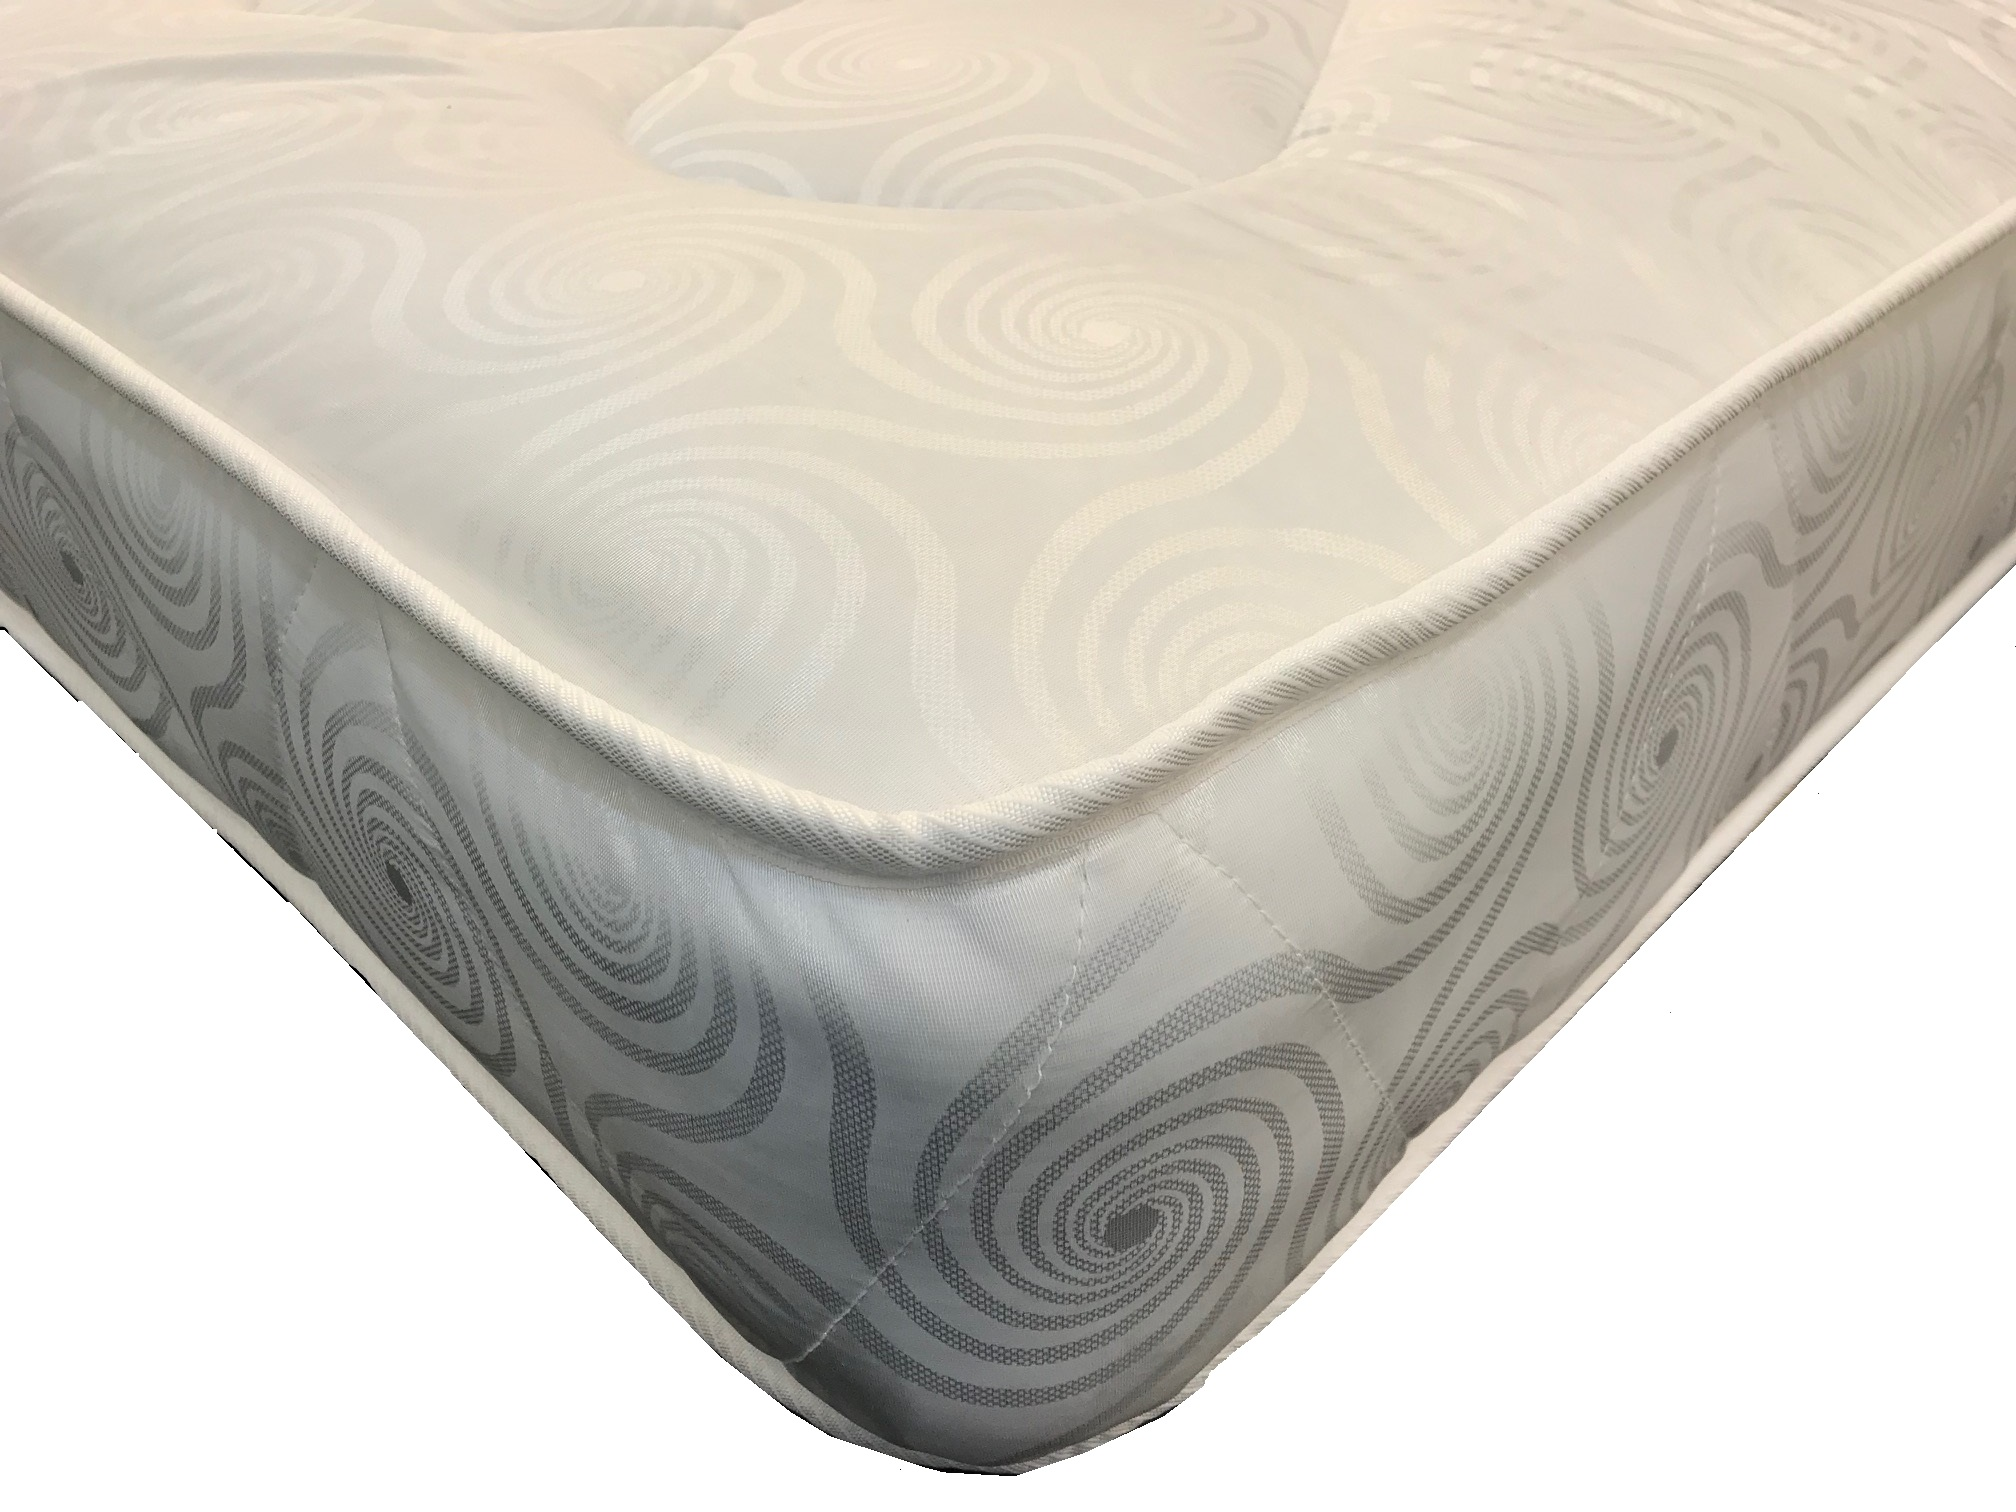 Medium Orthopaedic Mattress